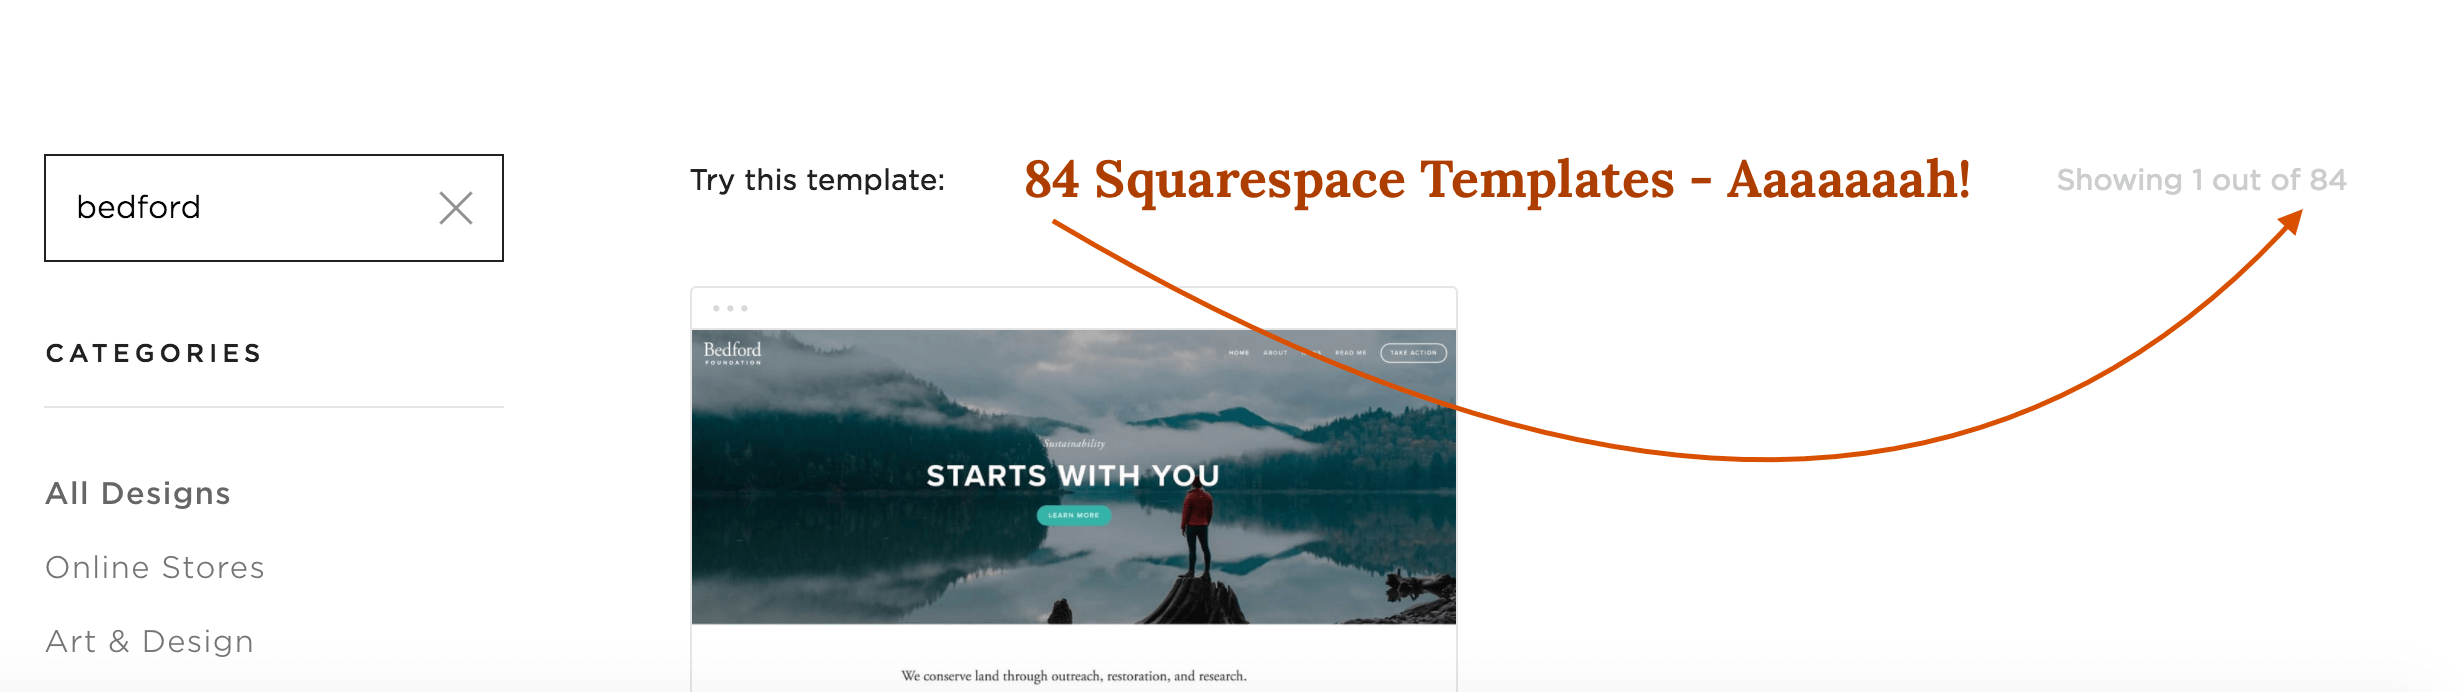 84 Squarespace Templates to Choose from